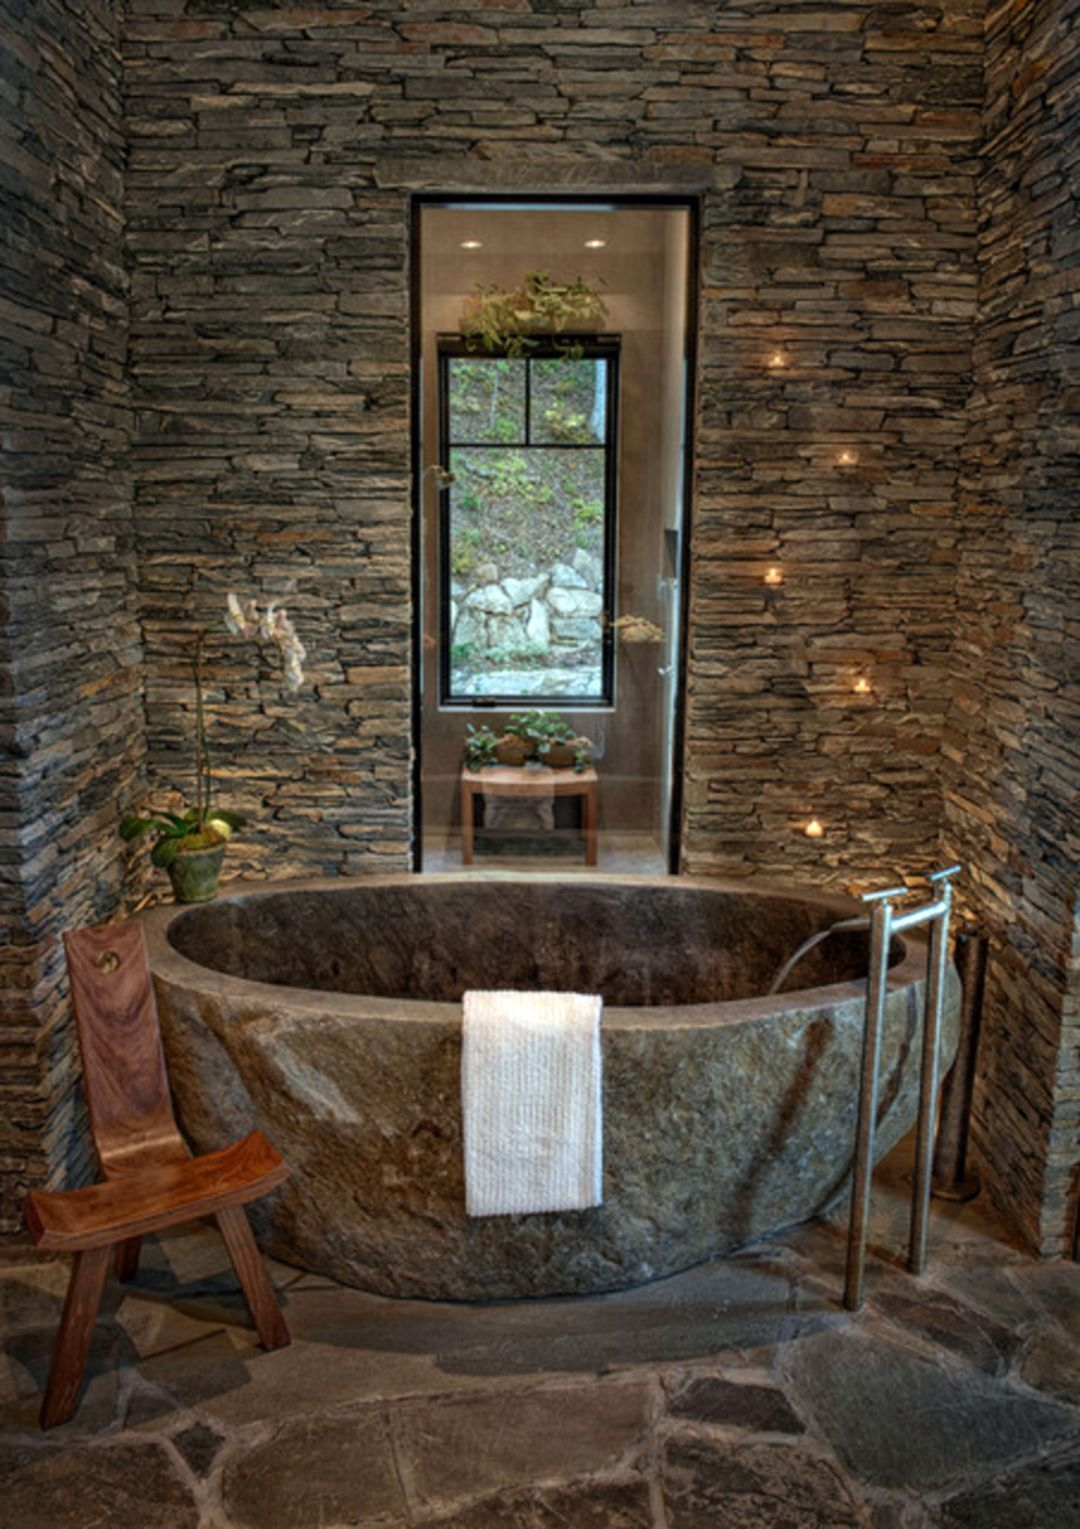 10 Beautiful Rustic Bathtub Design Ideas To Make You Betah Soak In